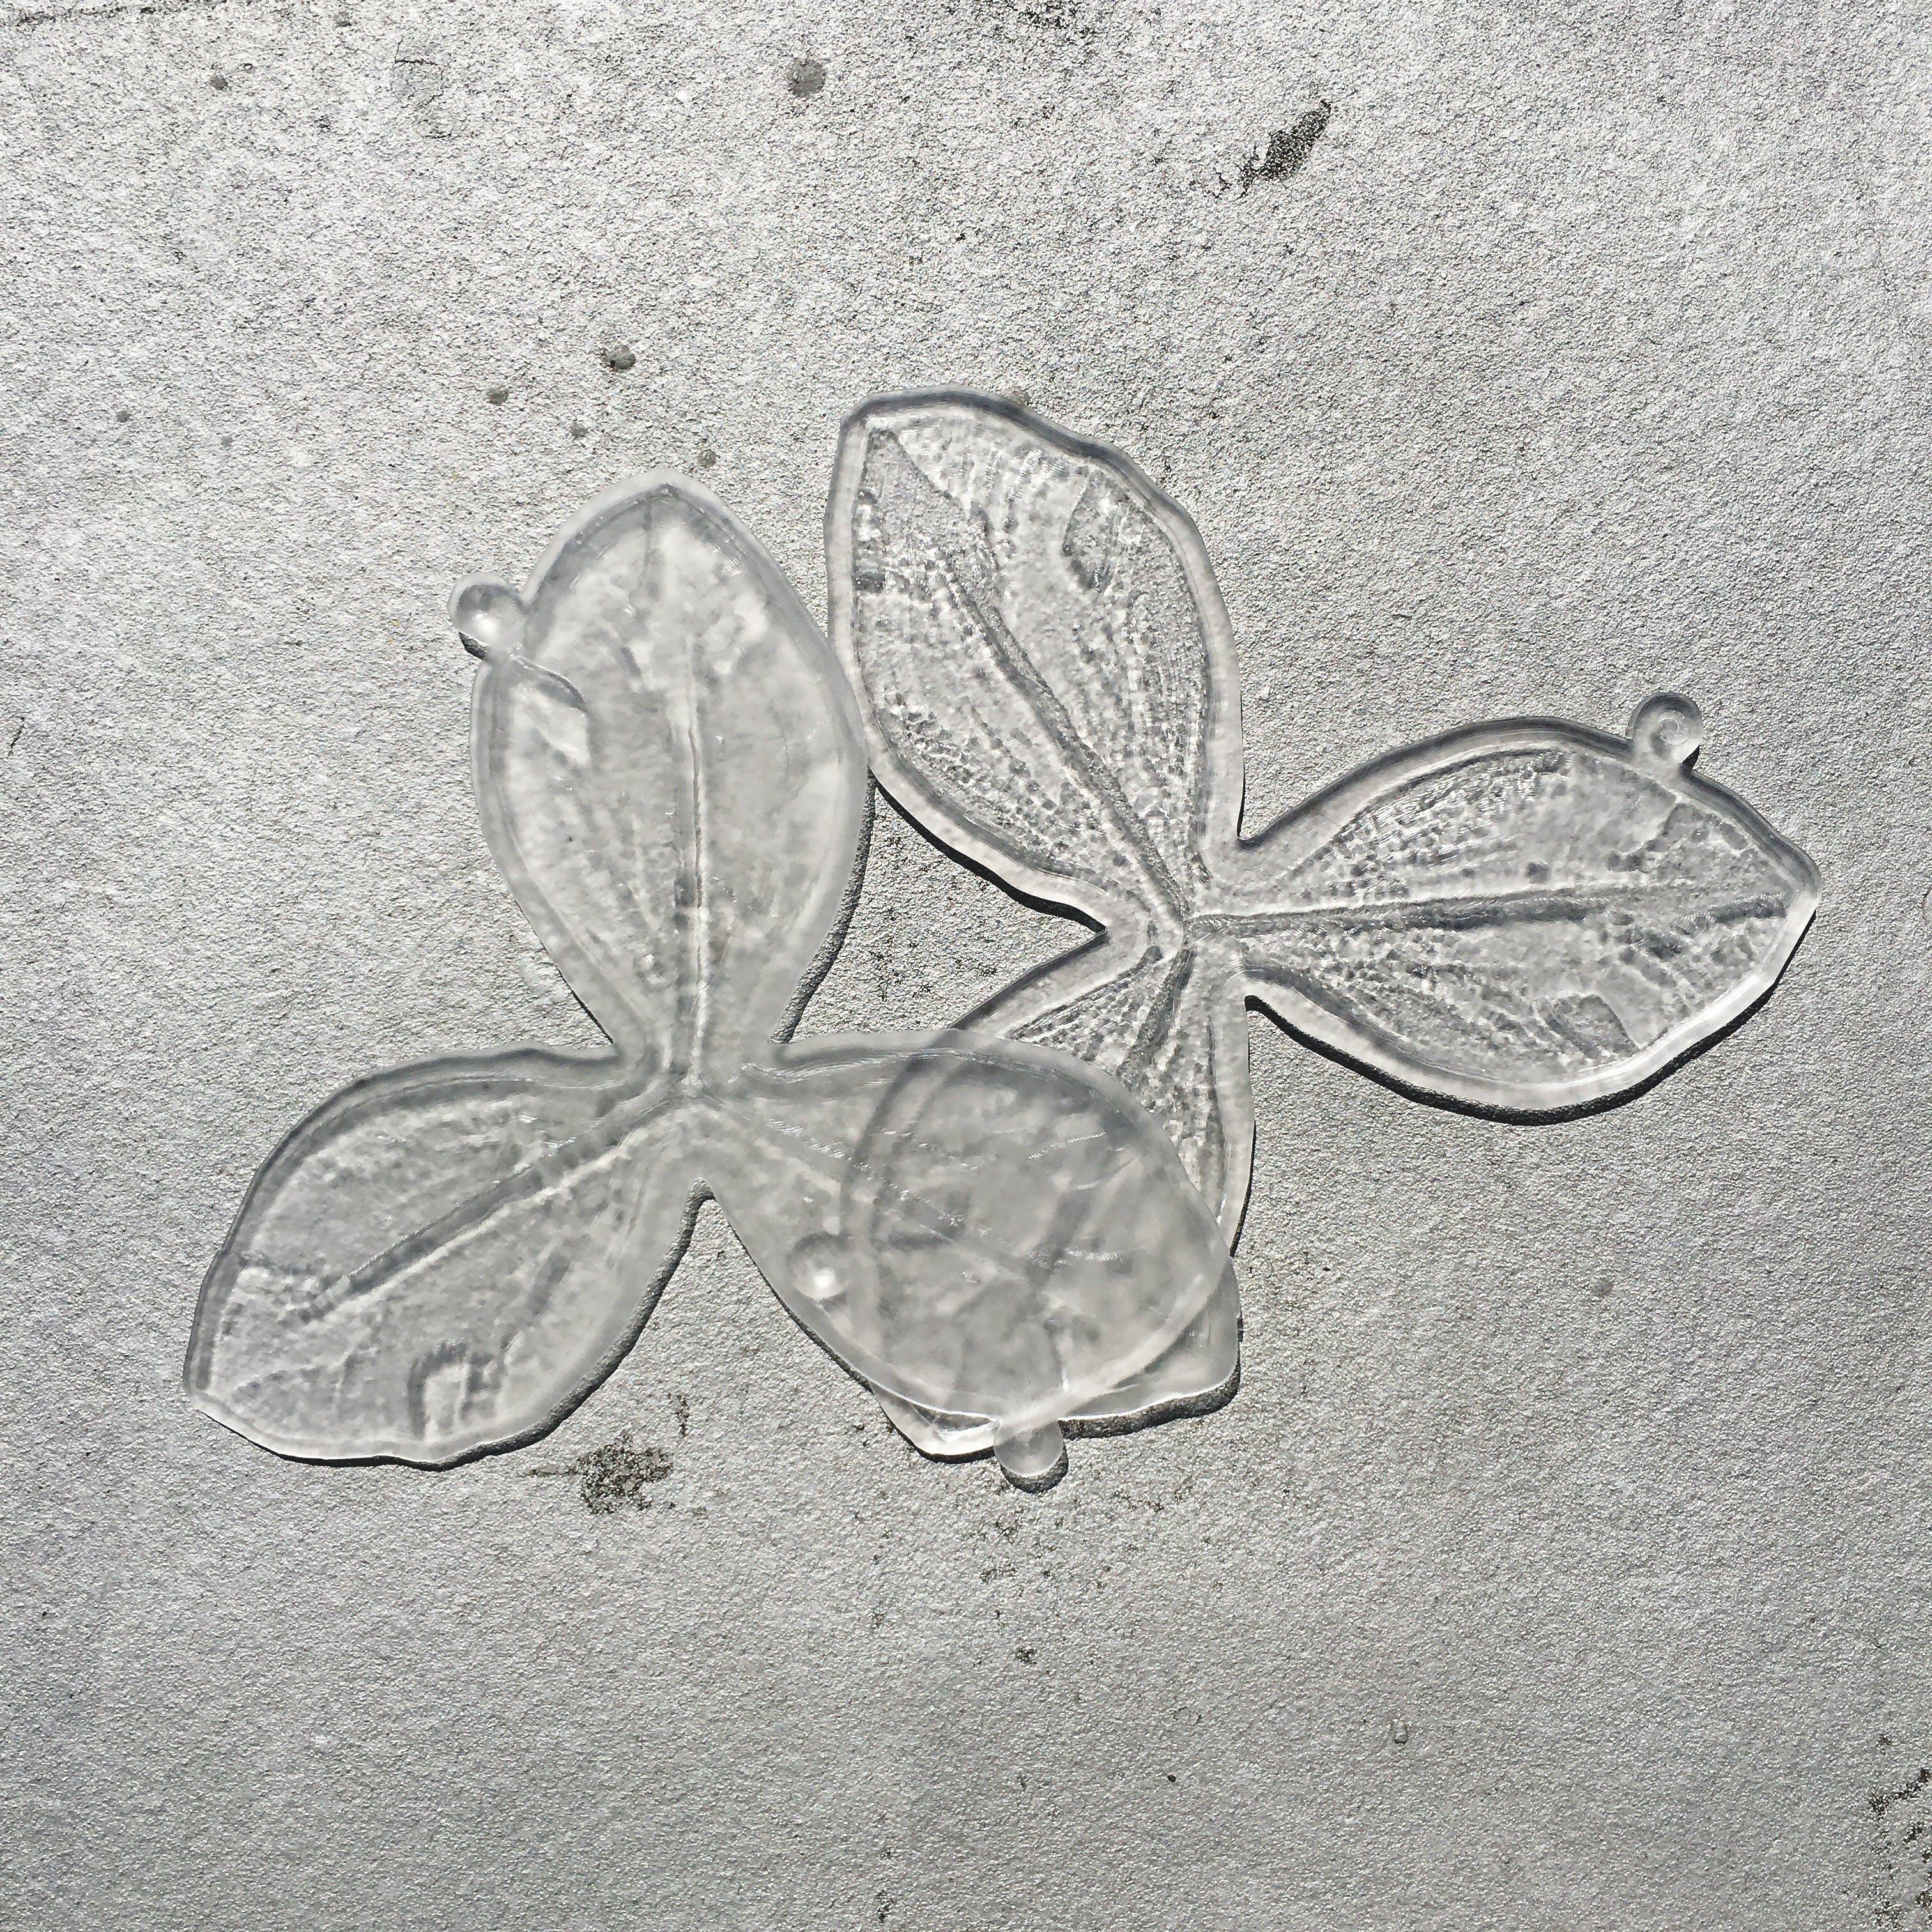 Agar poured into flower-shaped molds